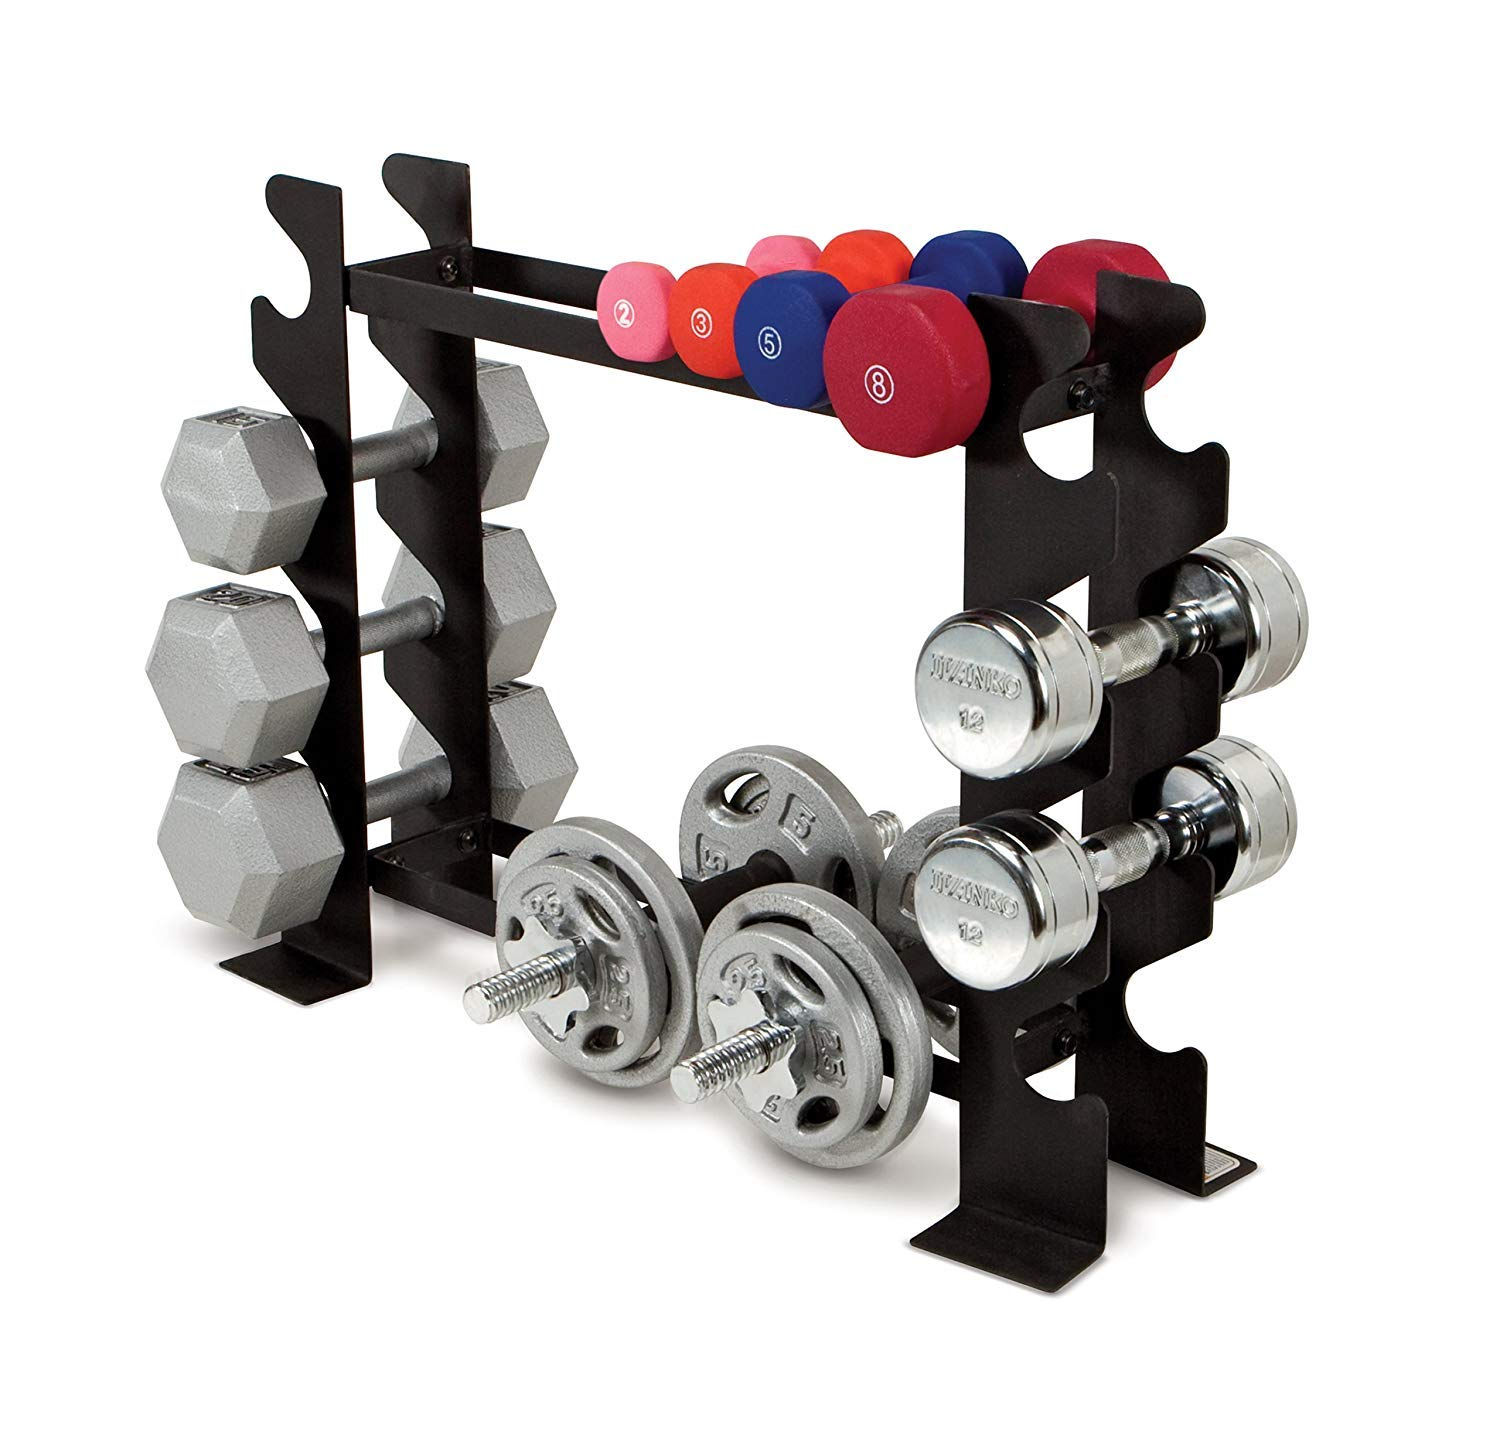 Marcy compact dumbbell rack free weight stand for home gym dbr